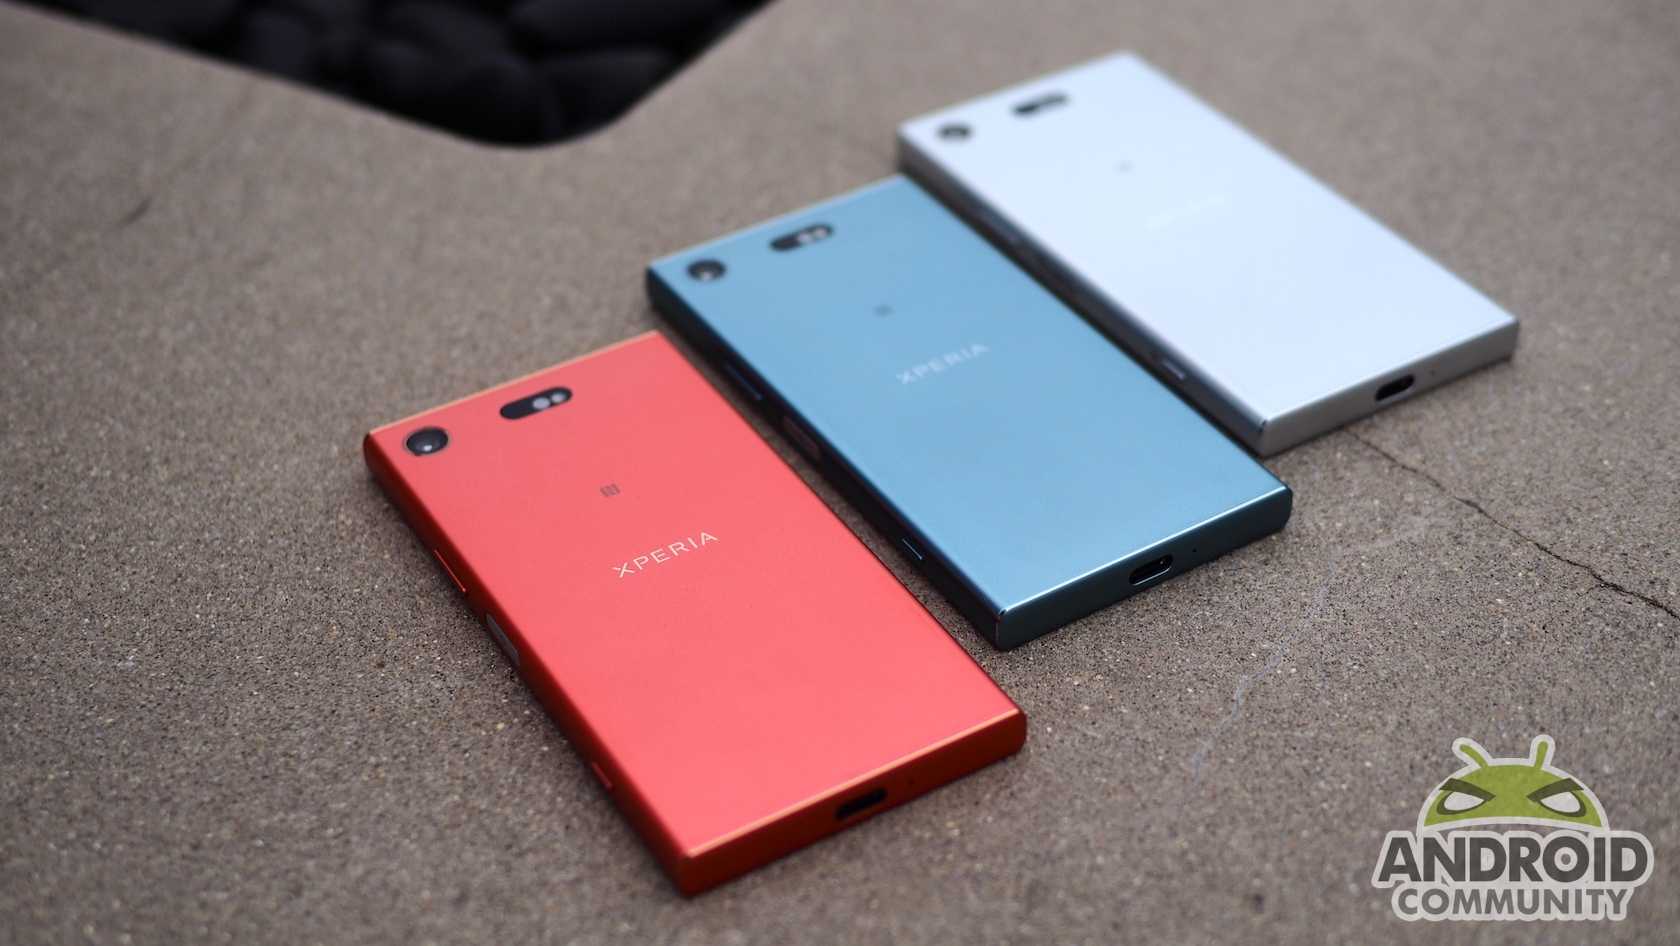 sony-xperia-xz1-compact-hands-on-ac-0.jpg